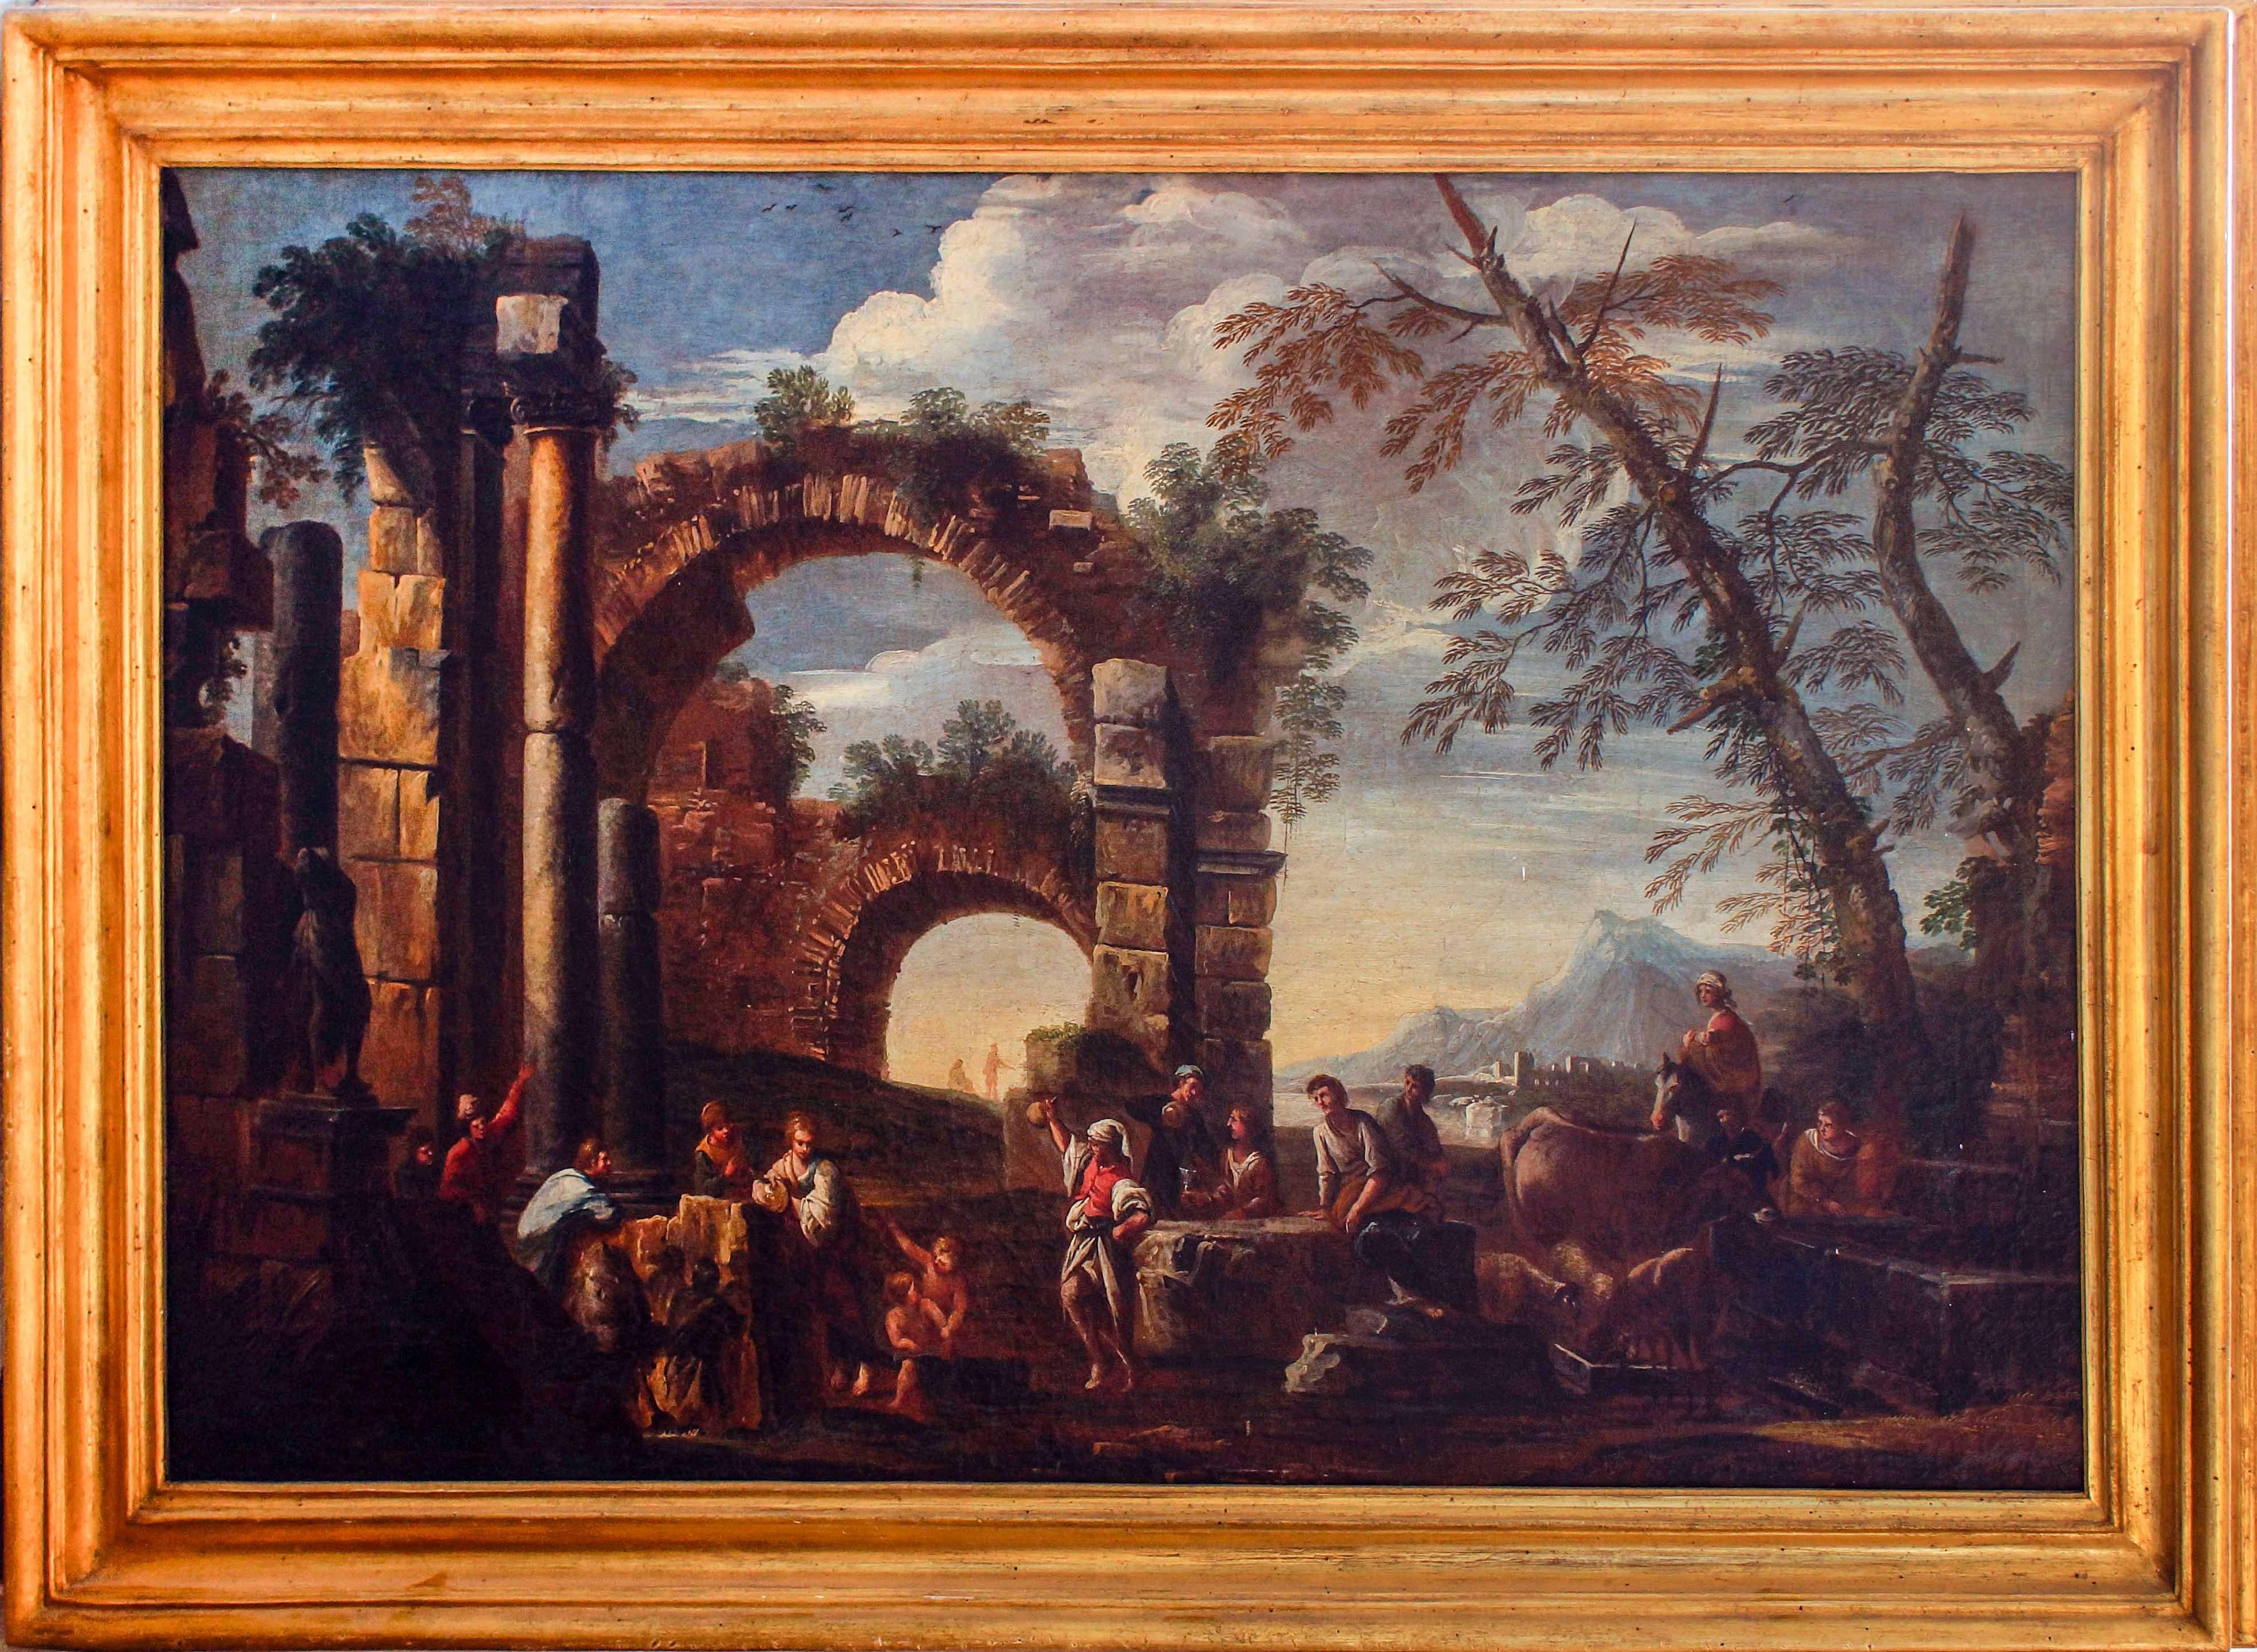 Roman Ruins with Figures - Original Oil On Canvas by Giovanni Ghisolfi